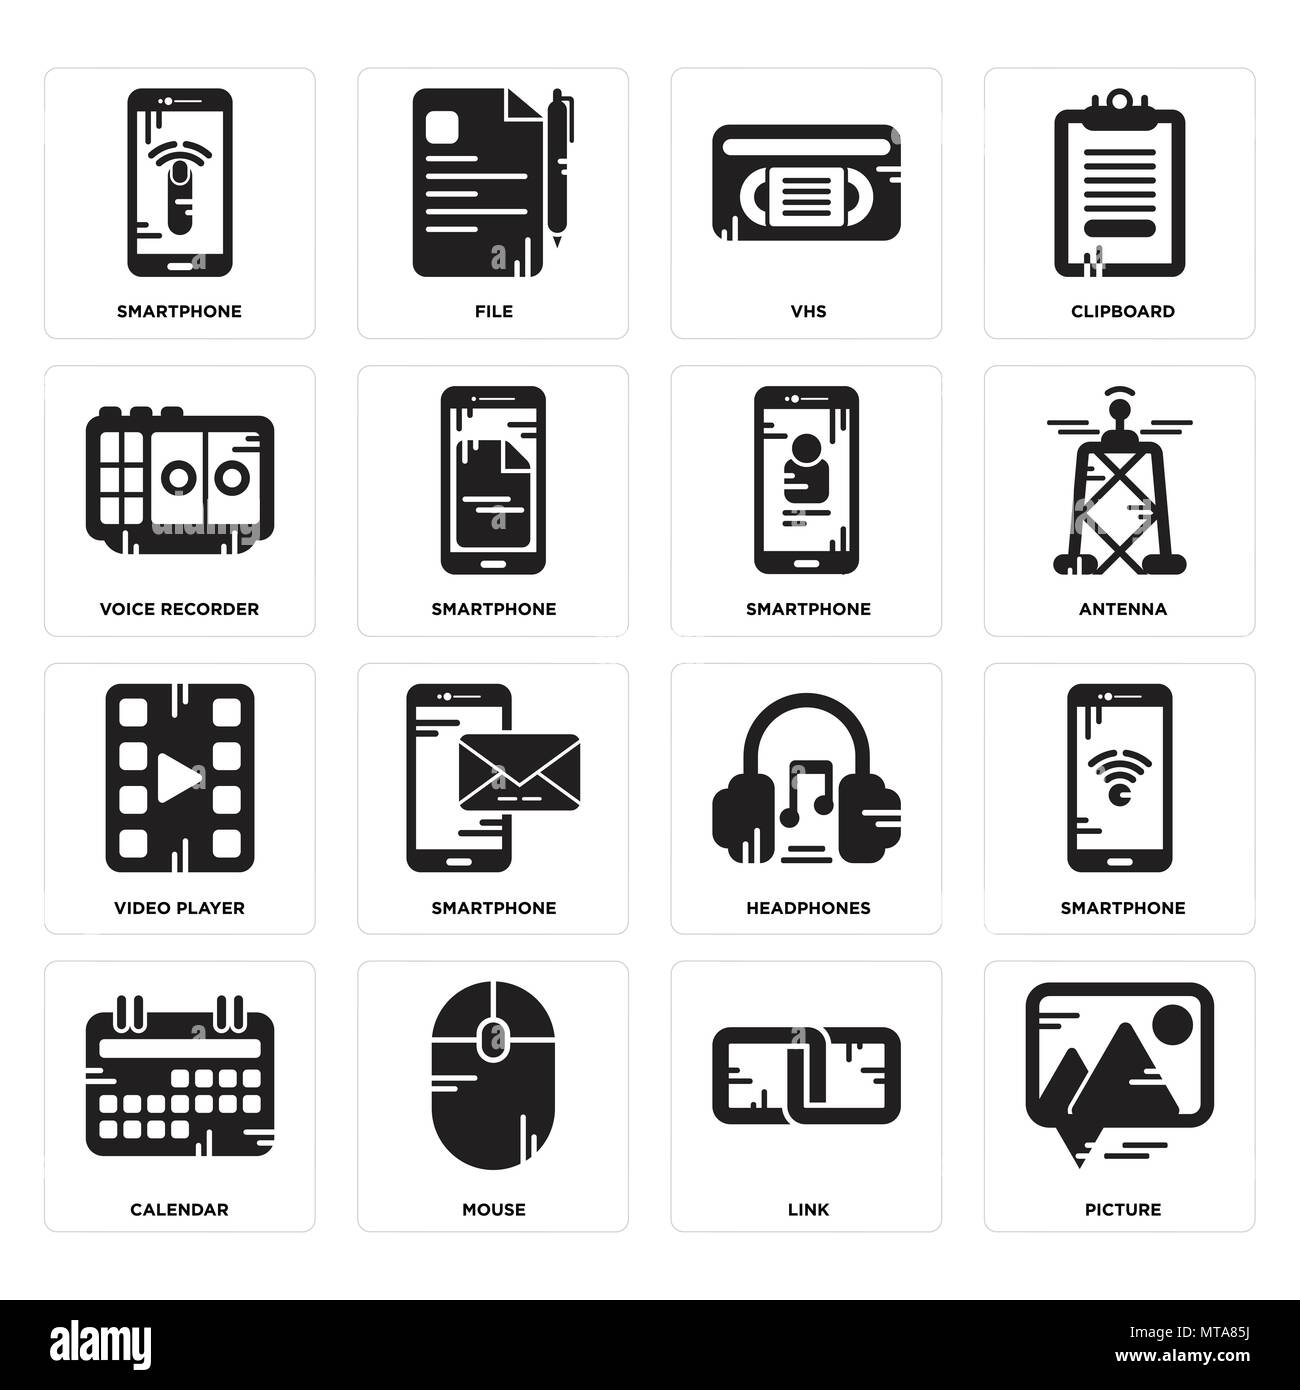 Set Of 16 simple editable icons such as Picture, Link, Mouse